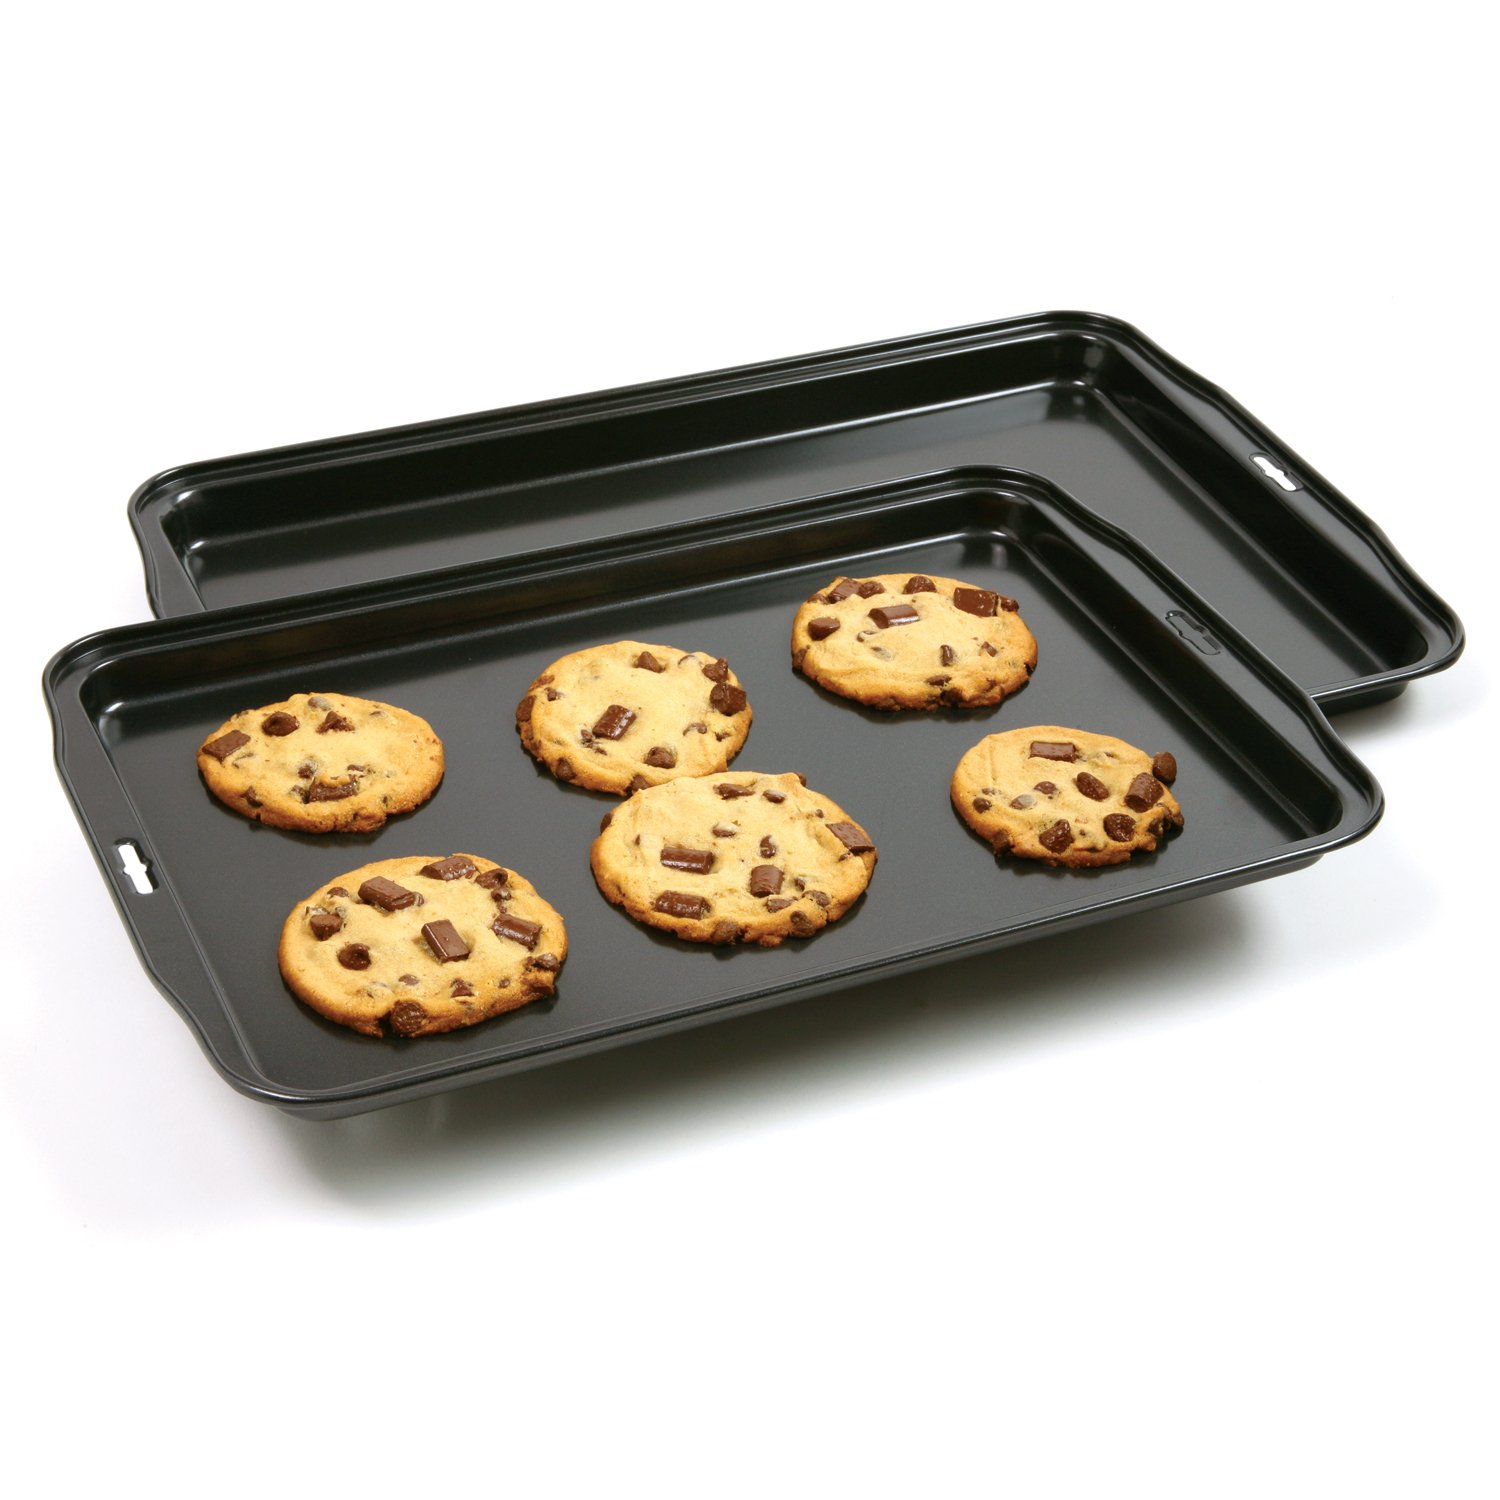 Norpro Nonstick Jelly Roll Pan 17 Inch by 11-Inch